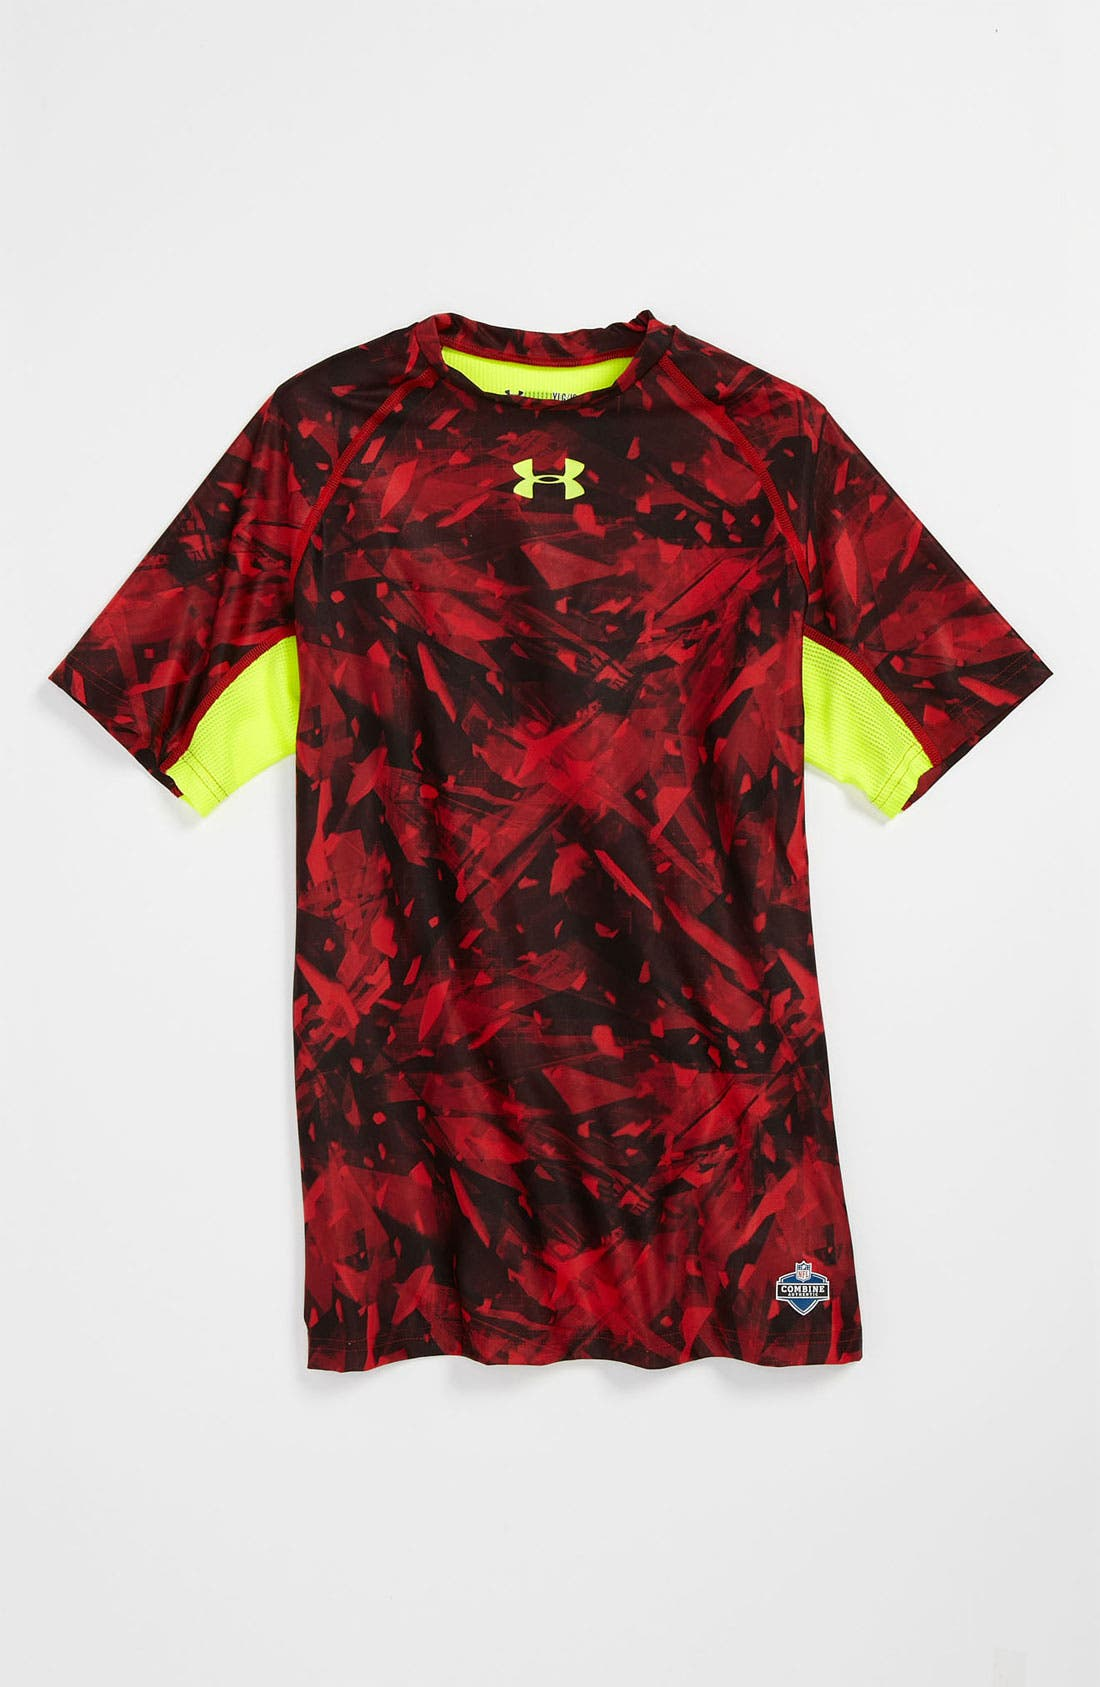 Alternate Image 1 Selected - Under Armour 'NFL Combine' T-Shirt (Big Boys)